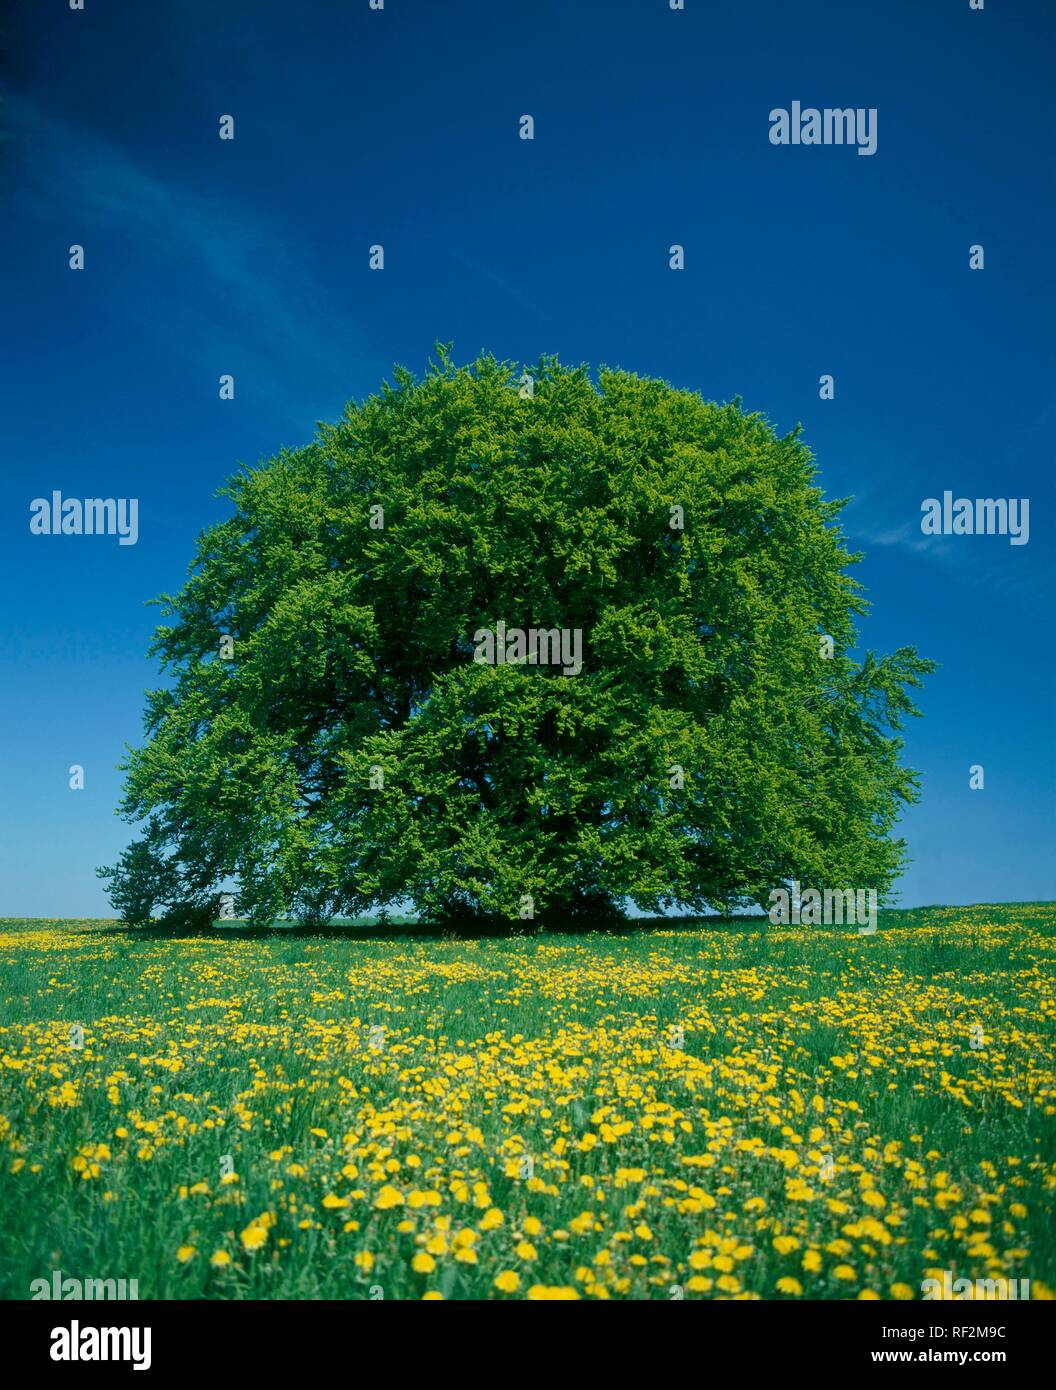 900-year-old beech tree (Fagus) on a spring meadow, Bavarian Beech, Bavaria - Stock Image